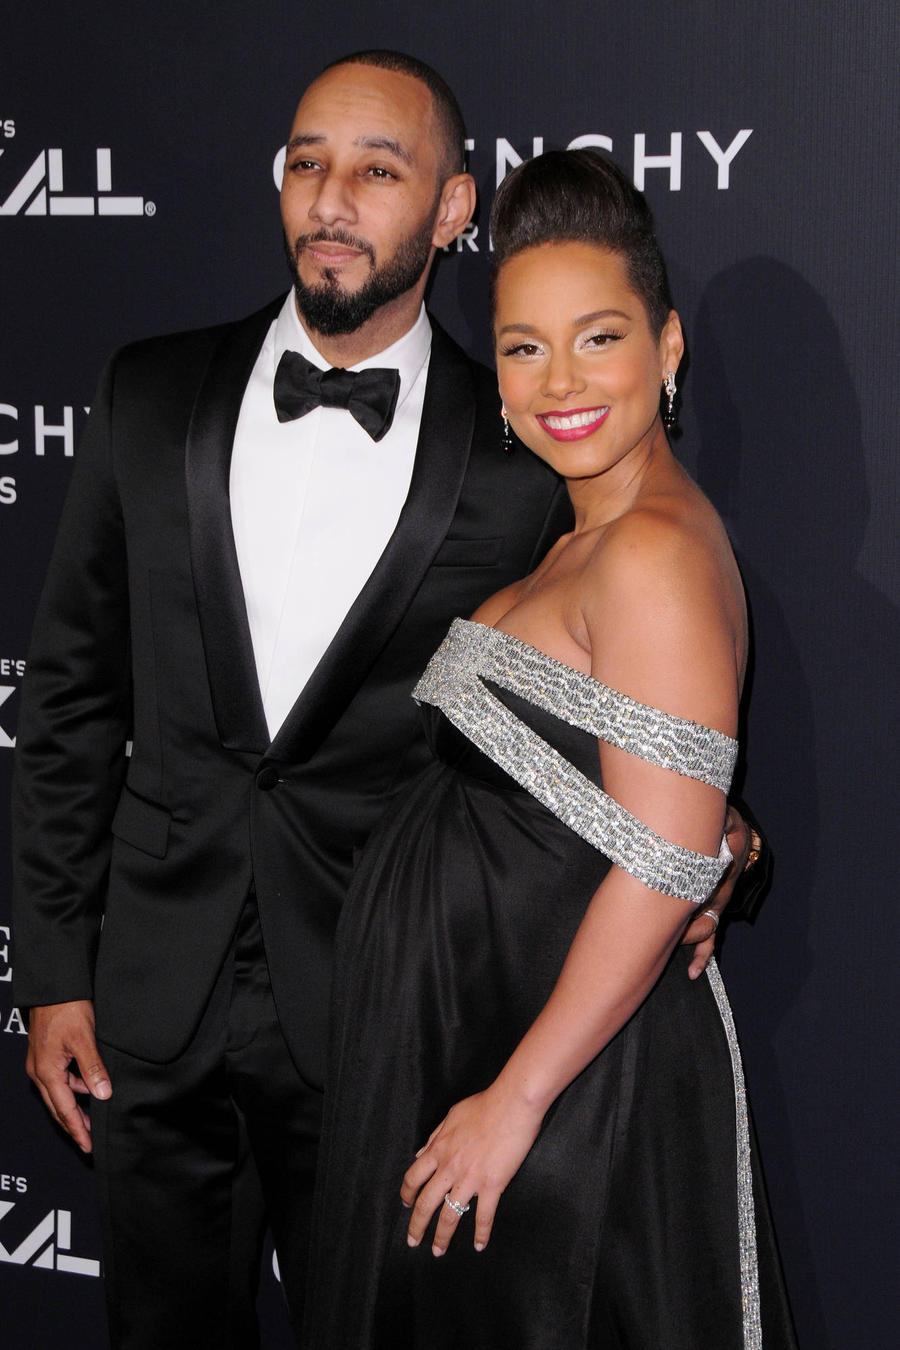 Alicia Keys' Young Son Co-produced Track For Kendrick Lamar